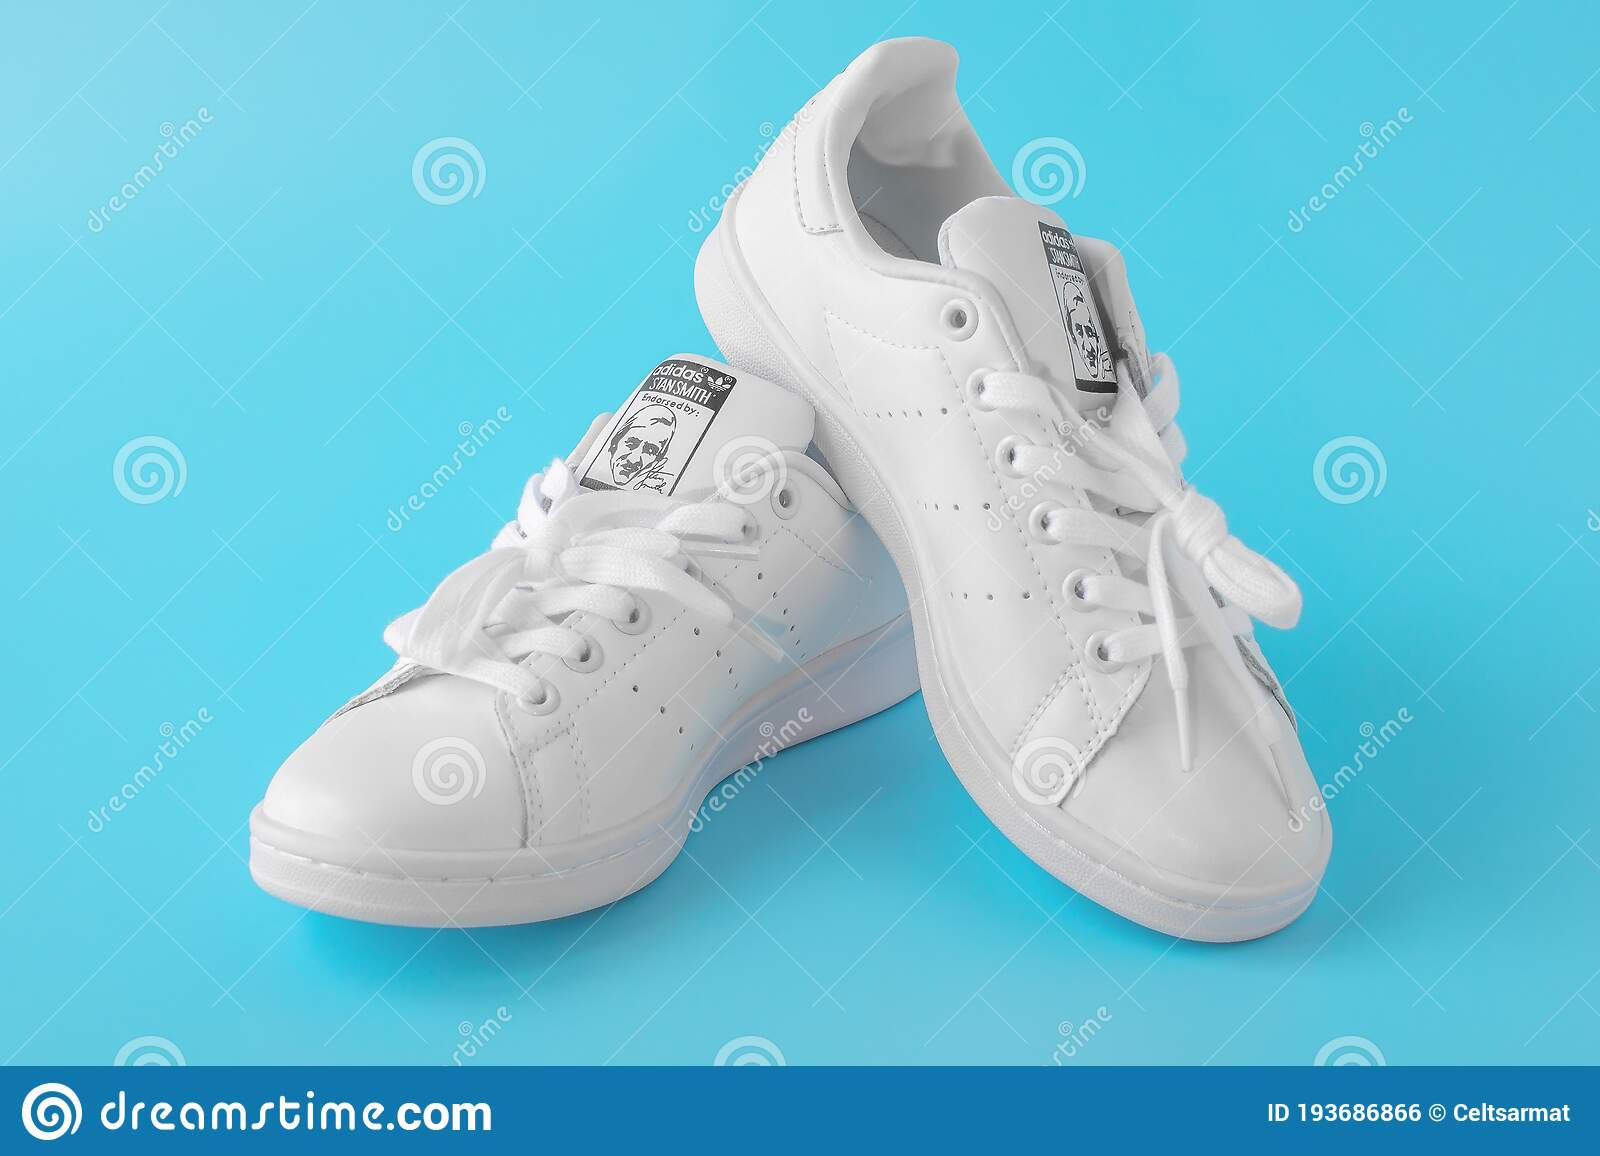 Moscow, Russia - JULY 30, 2020: White Shoes Adidas Stan Smith ...